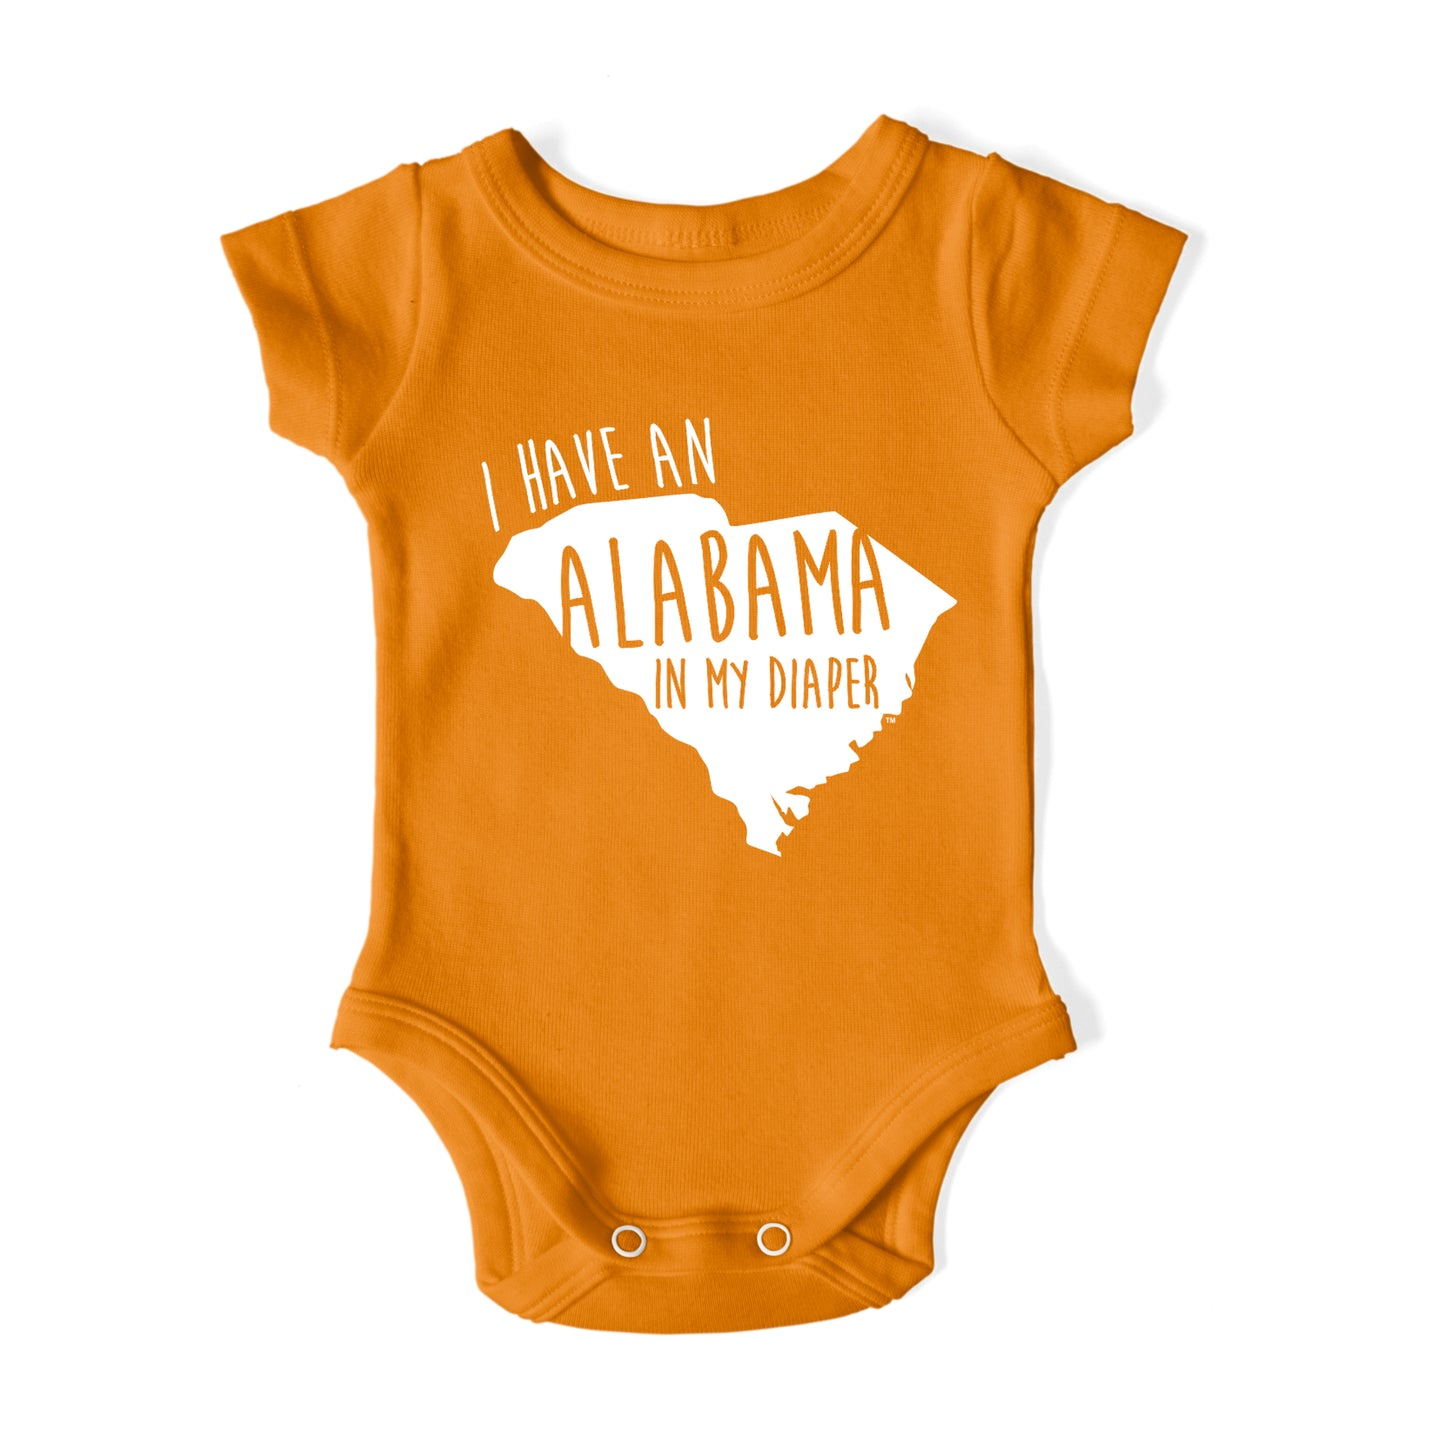 I HAVE AN ALABAMA IN MY DIAPER Baby One Piece